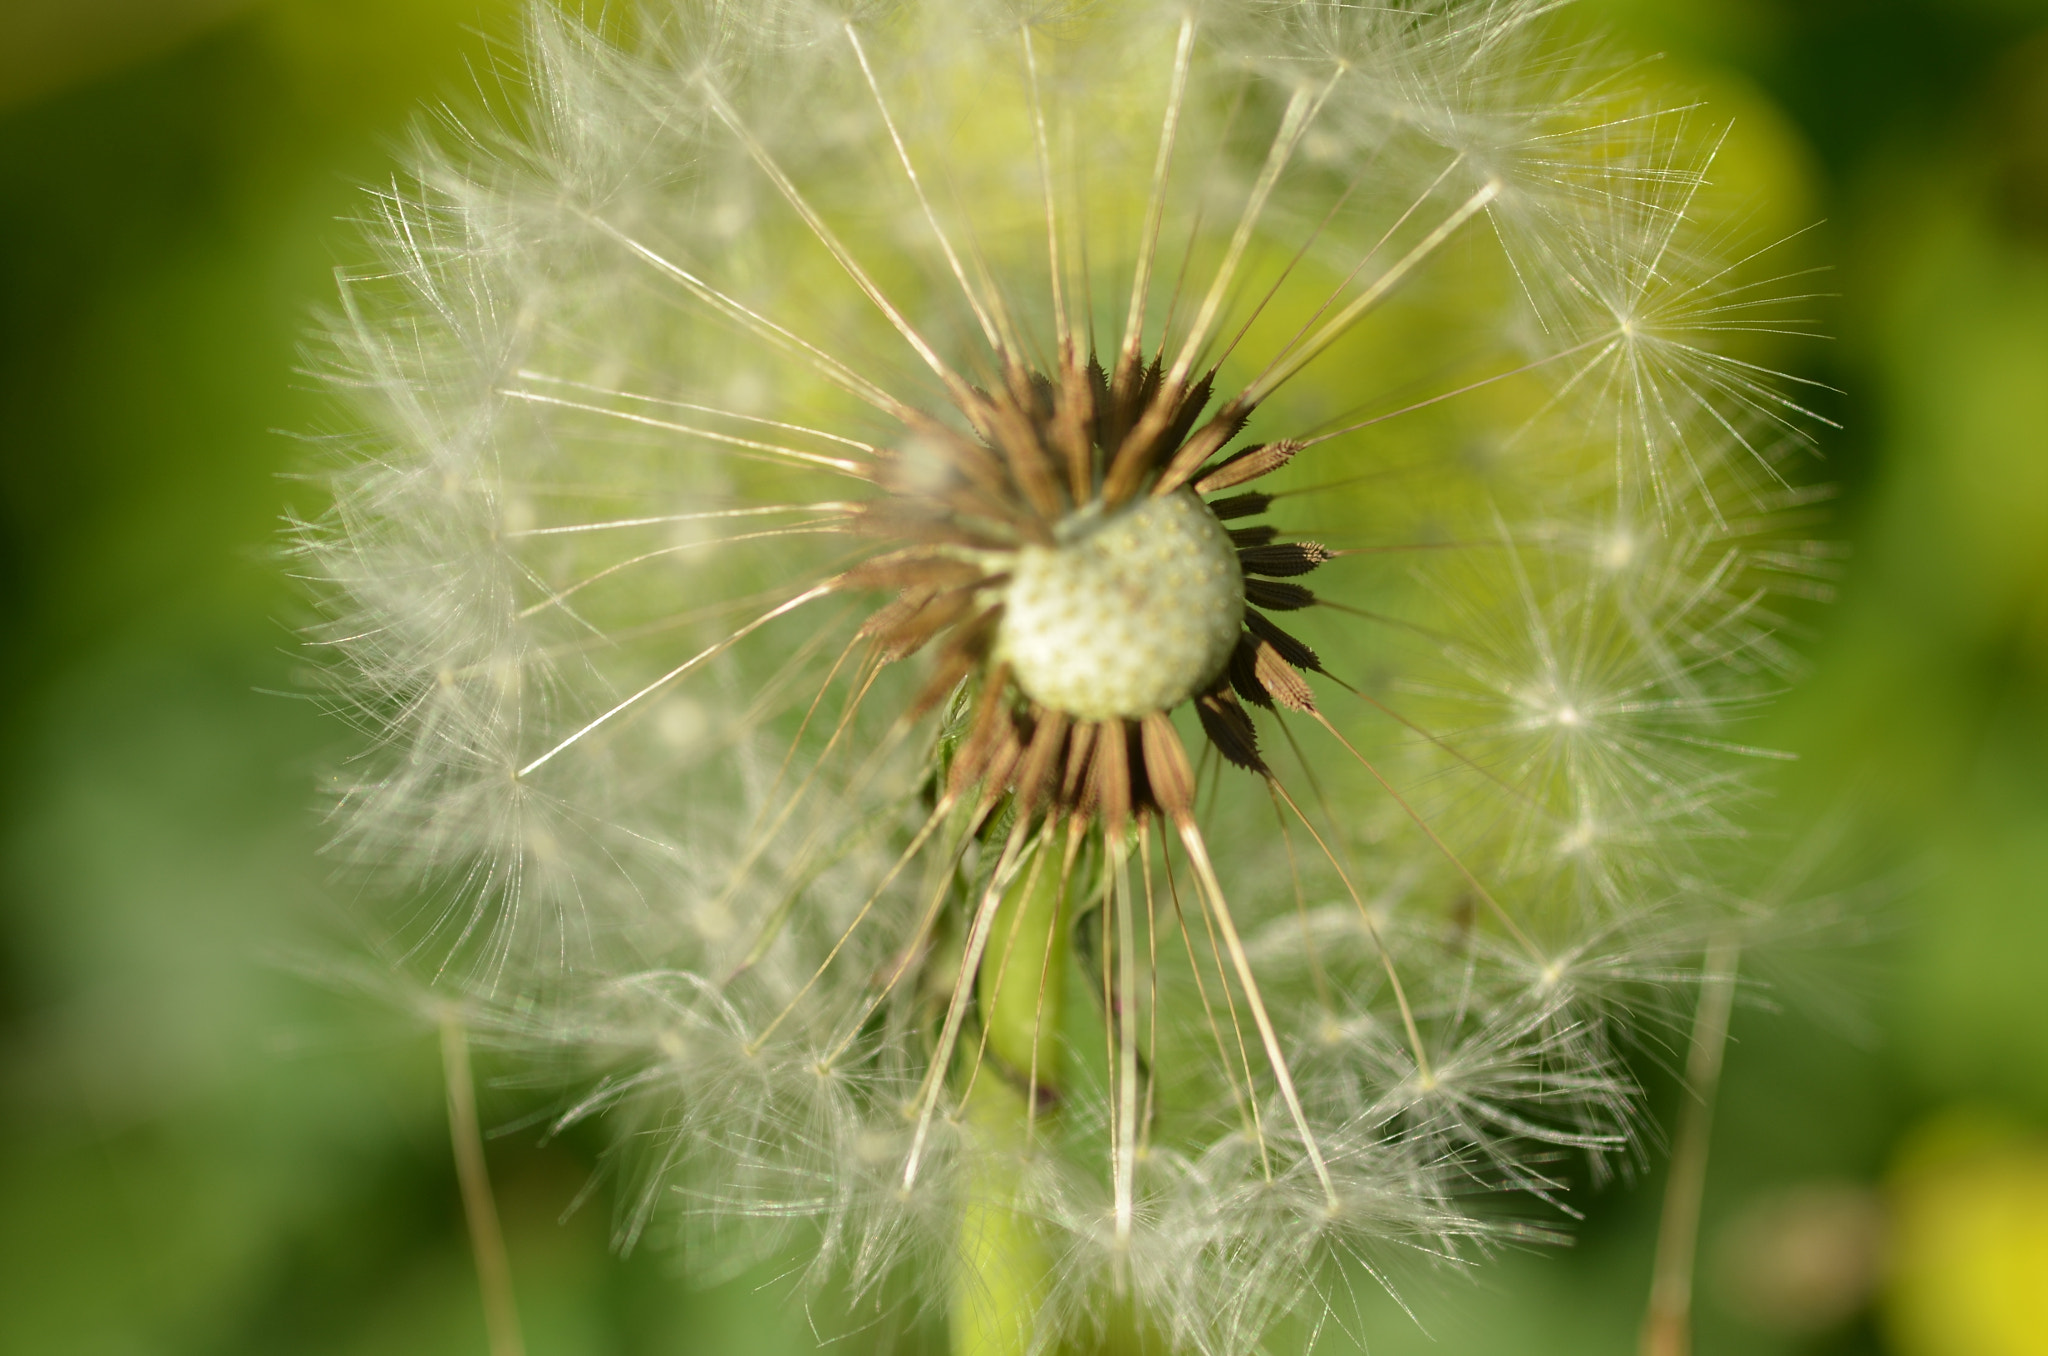 Photograph the dandelion seed by Martyn Addison-Smith on 500px